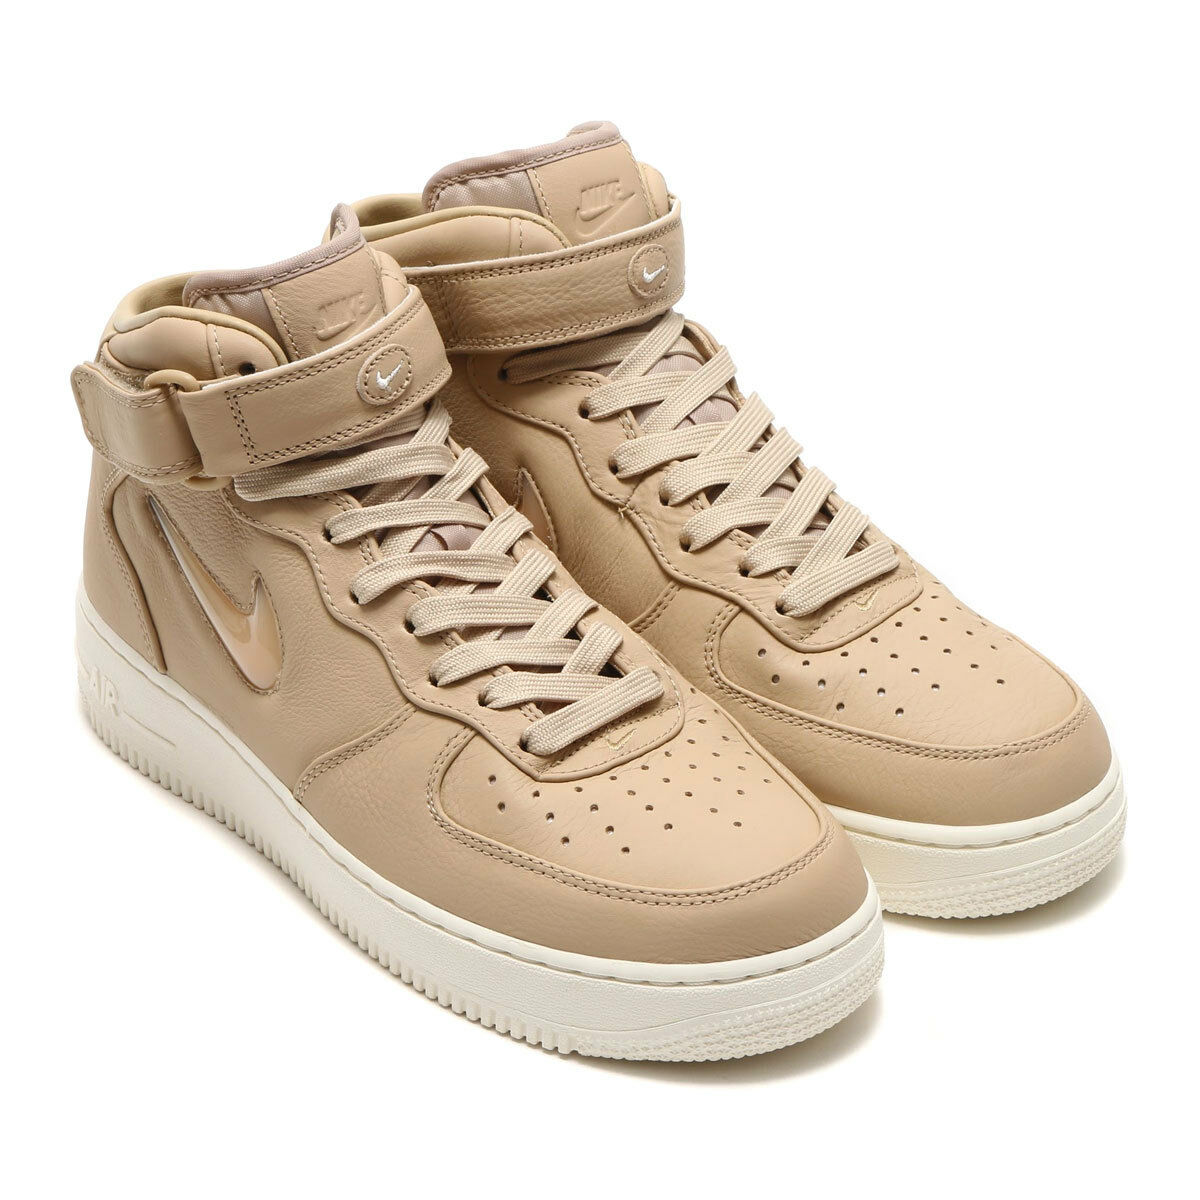 Nike Air Force 1 Mid Retro Premium JEWEL PRM Mushroom 941913 200 Hommes New